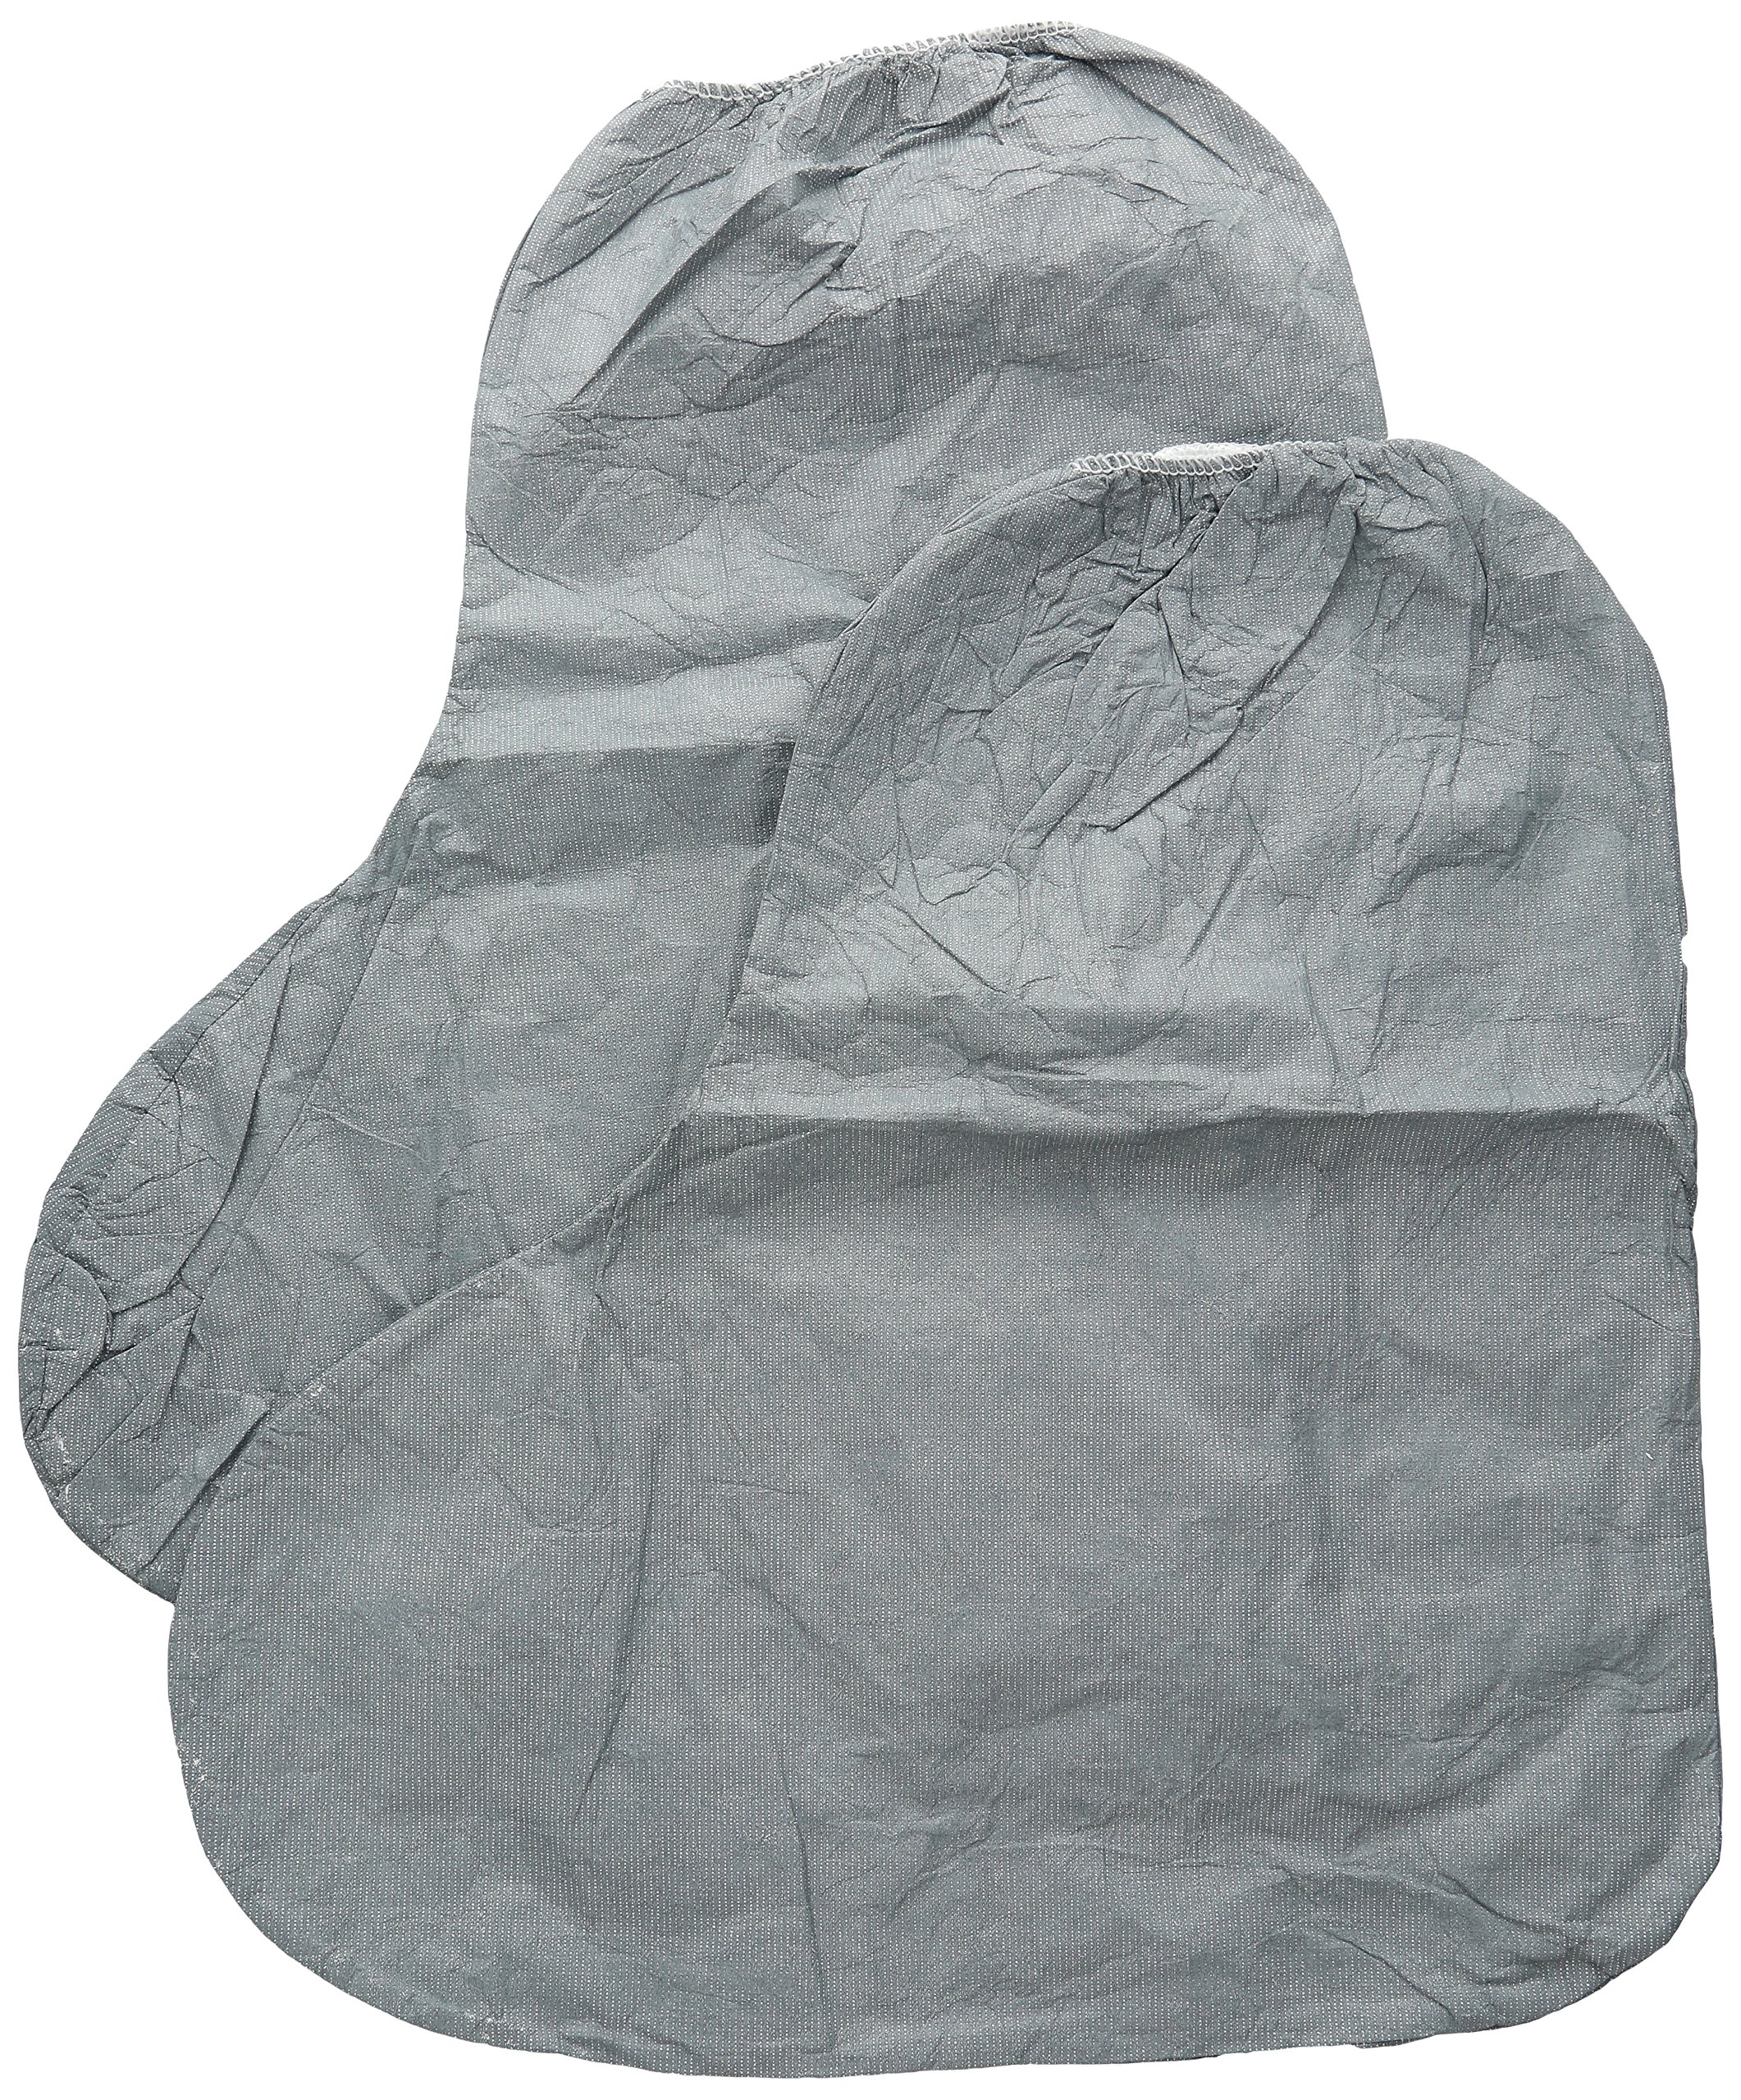 Dupont FC454SGY00010000 FC Boot Cover, 18'', Gray (Pack of 100)